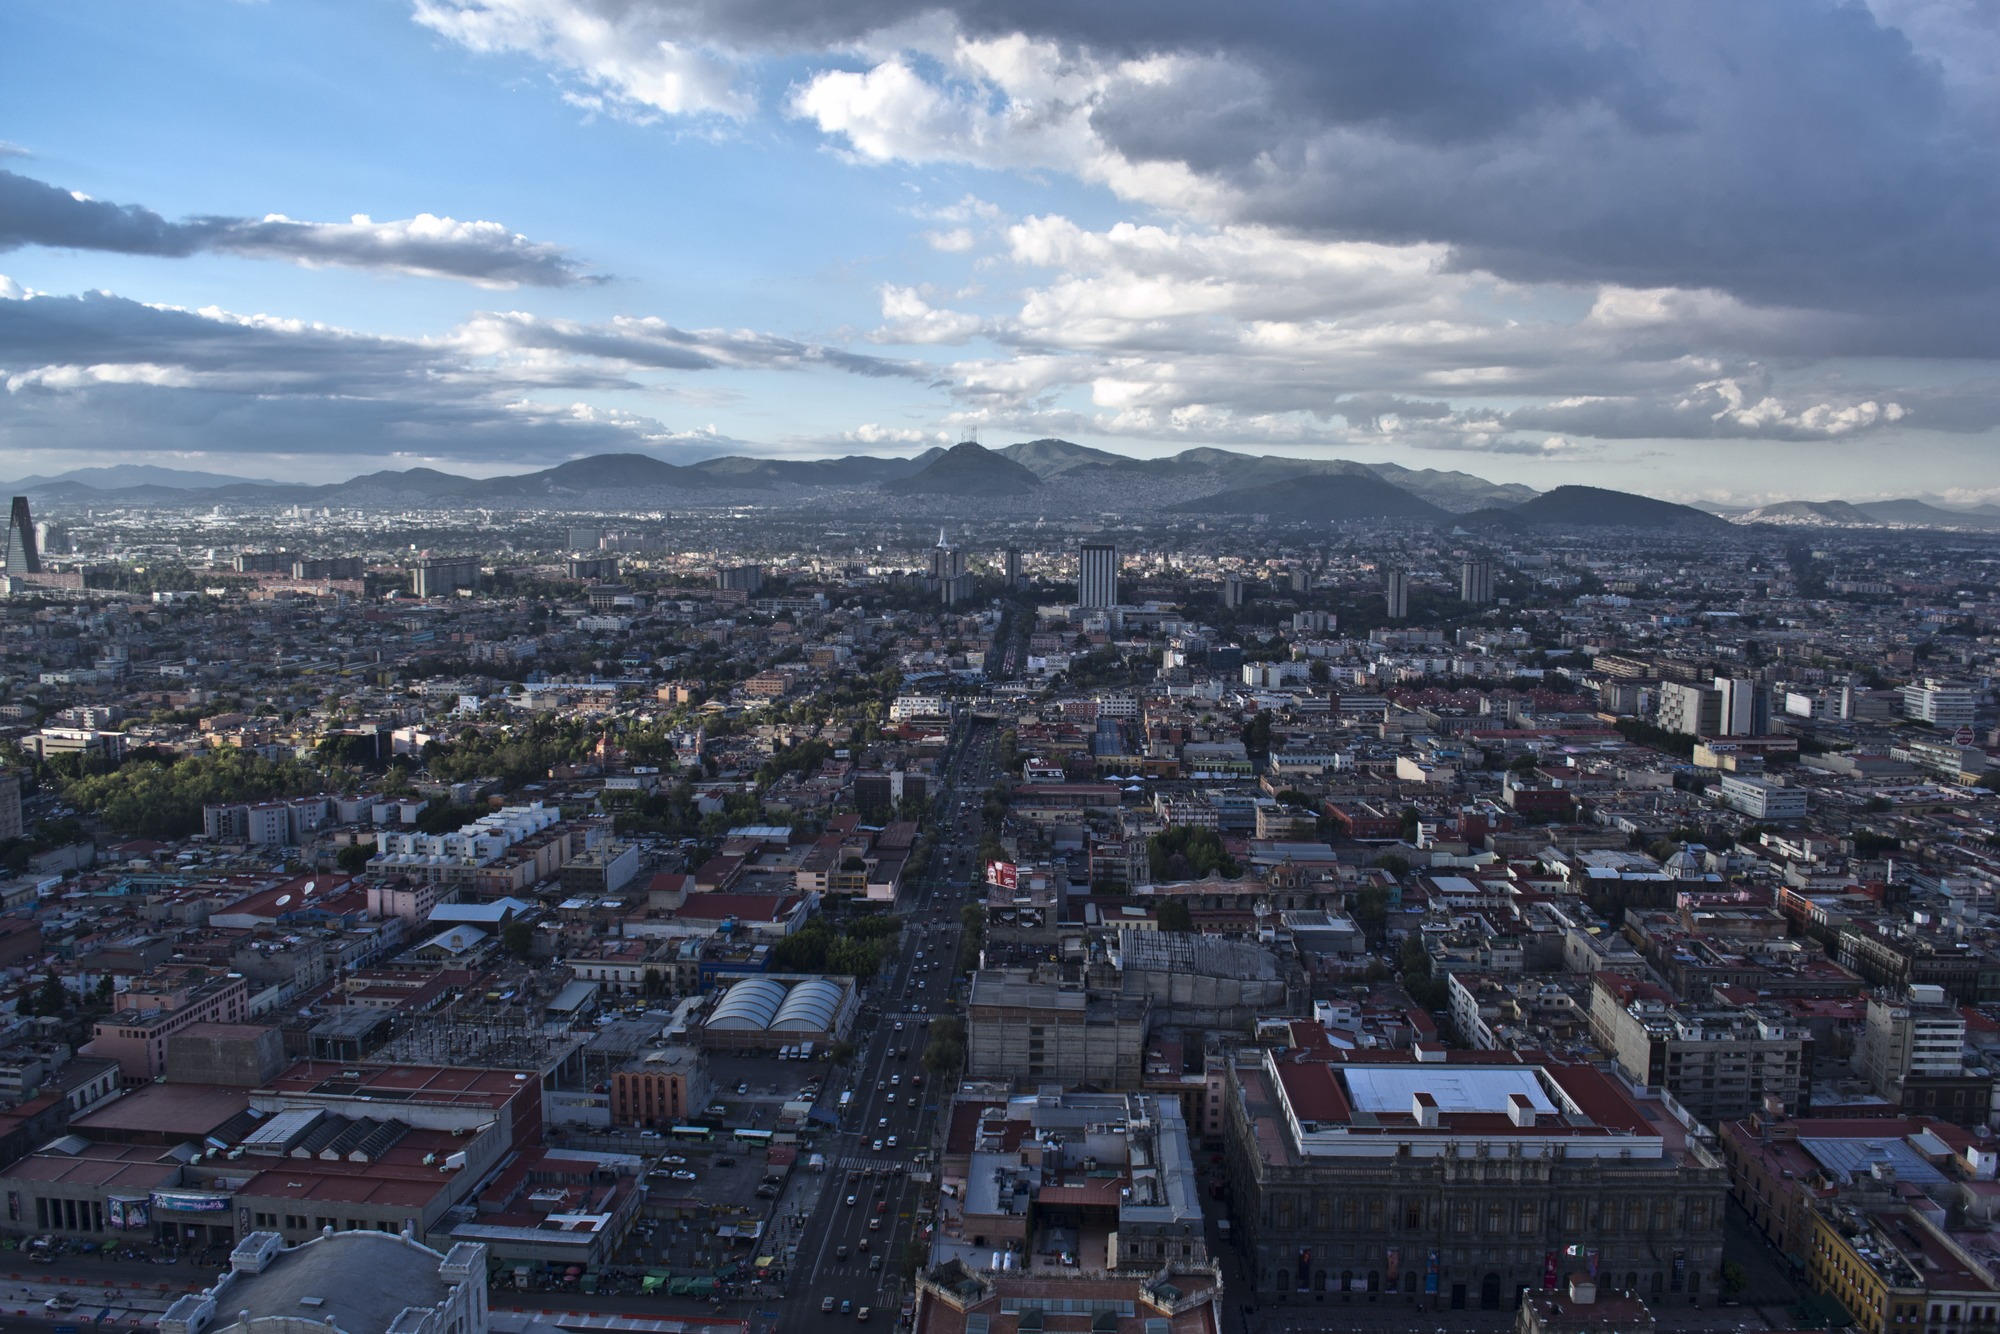 30 Sites Every Architect Should Visit in Mexico City ...